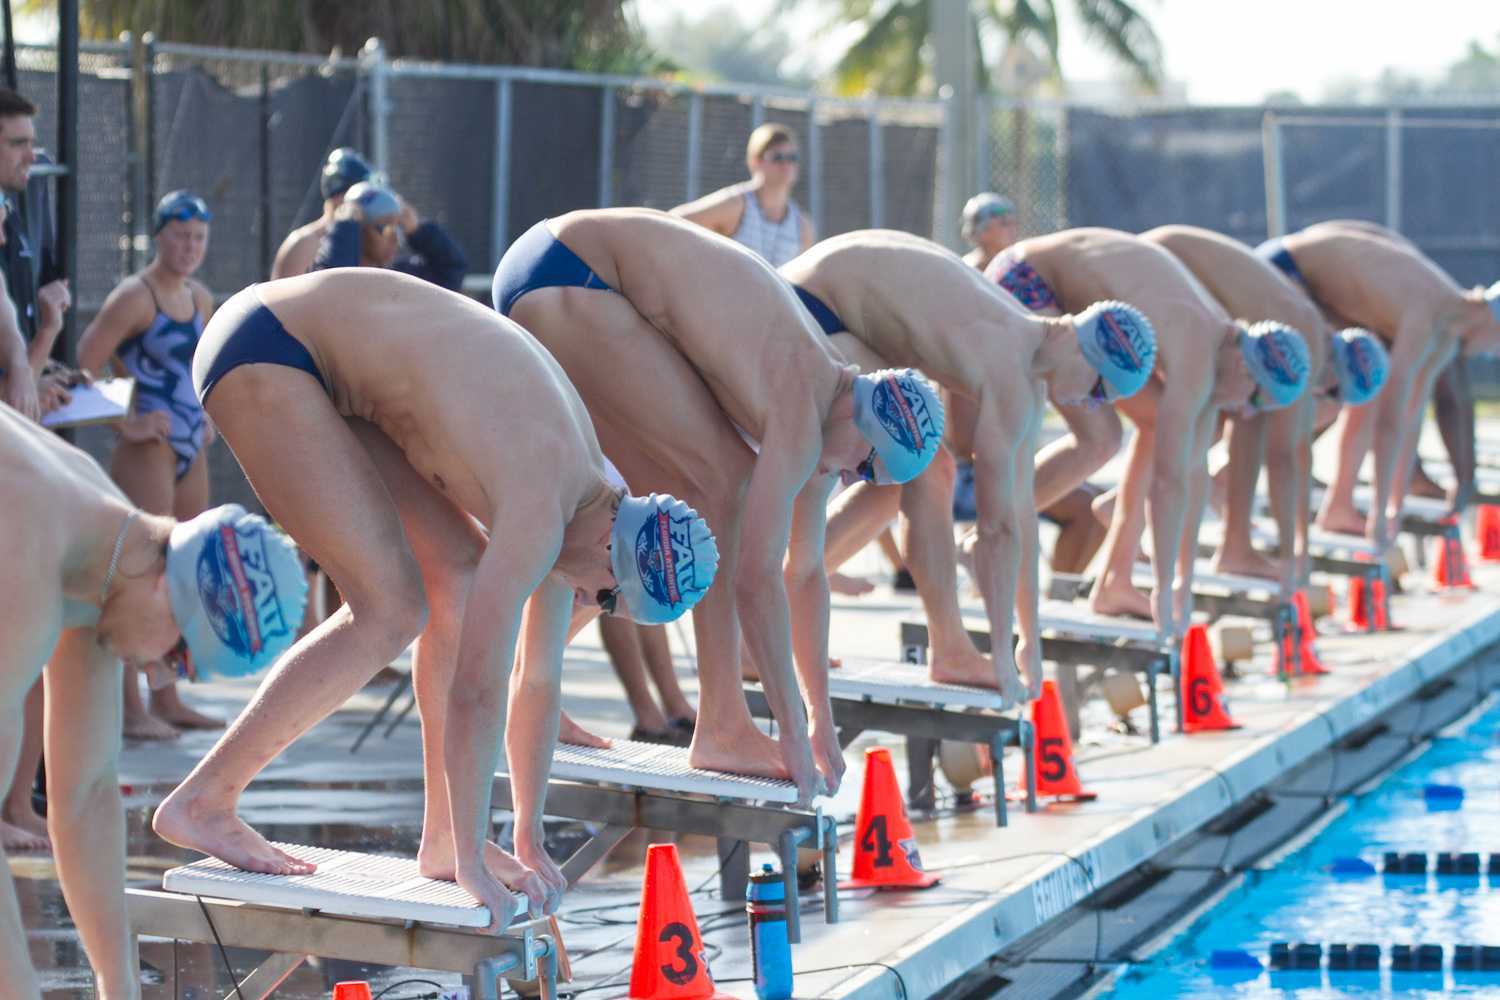 The FAU men's swim team prepares for the beginning of the 200-yard freestyle. The team lost 210-84 to Indian River State College in their final meet of the year on Jan. 31.